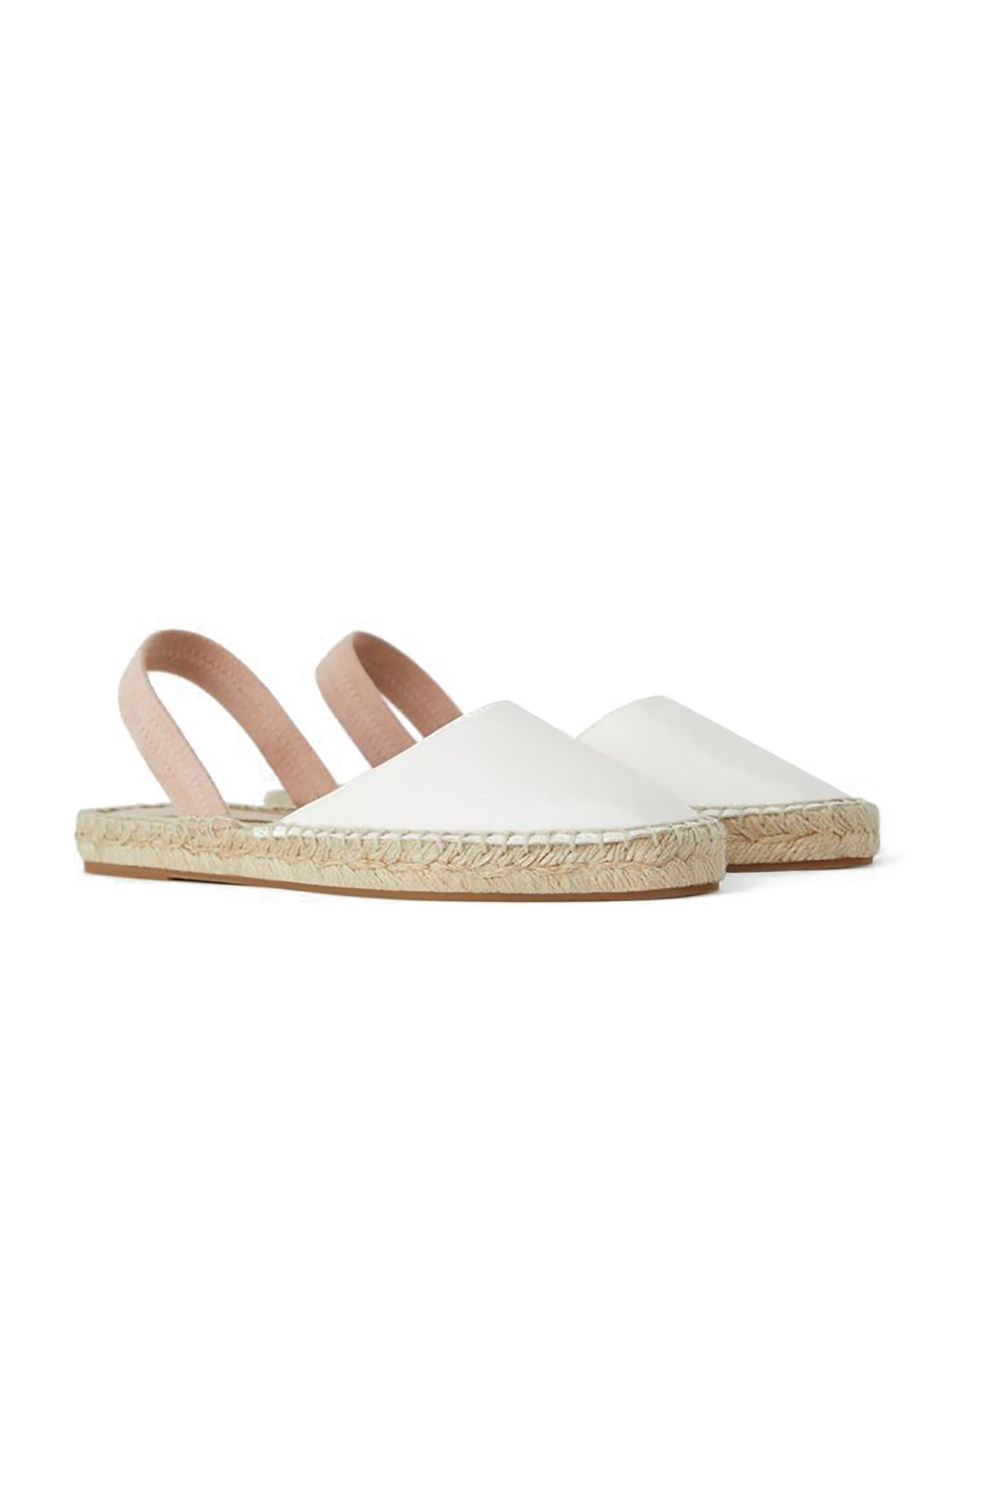 Sophisticated Comfort Zara, $20 SHOP IT Spring is one step closer to summer, which means espadrilles are in season.